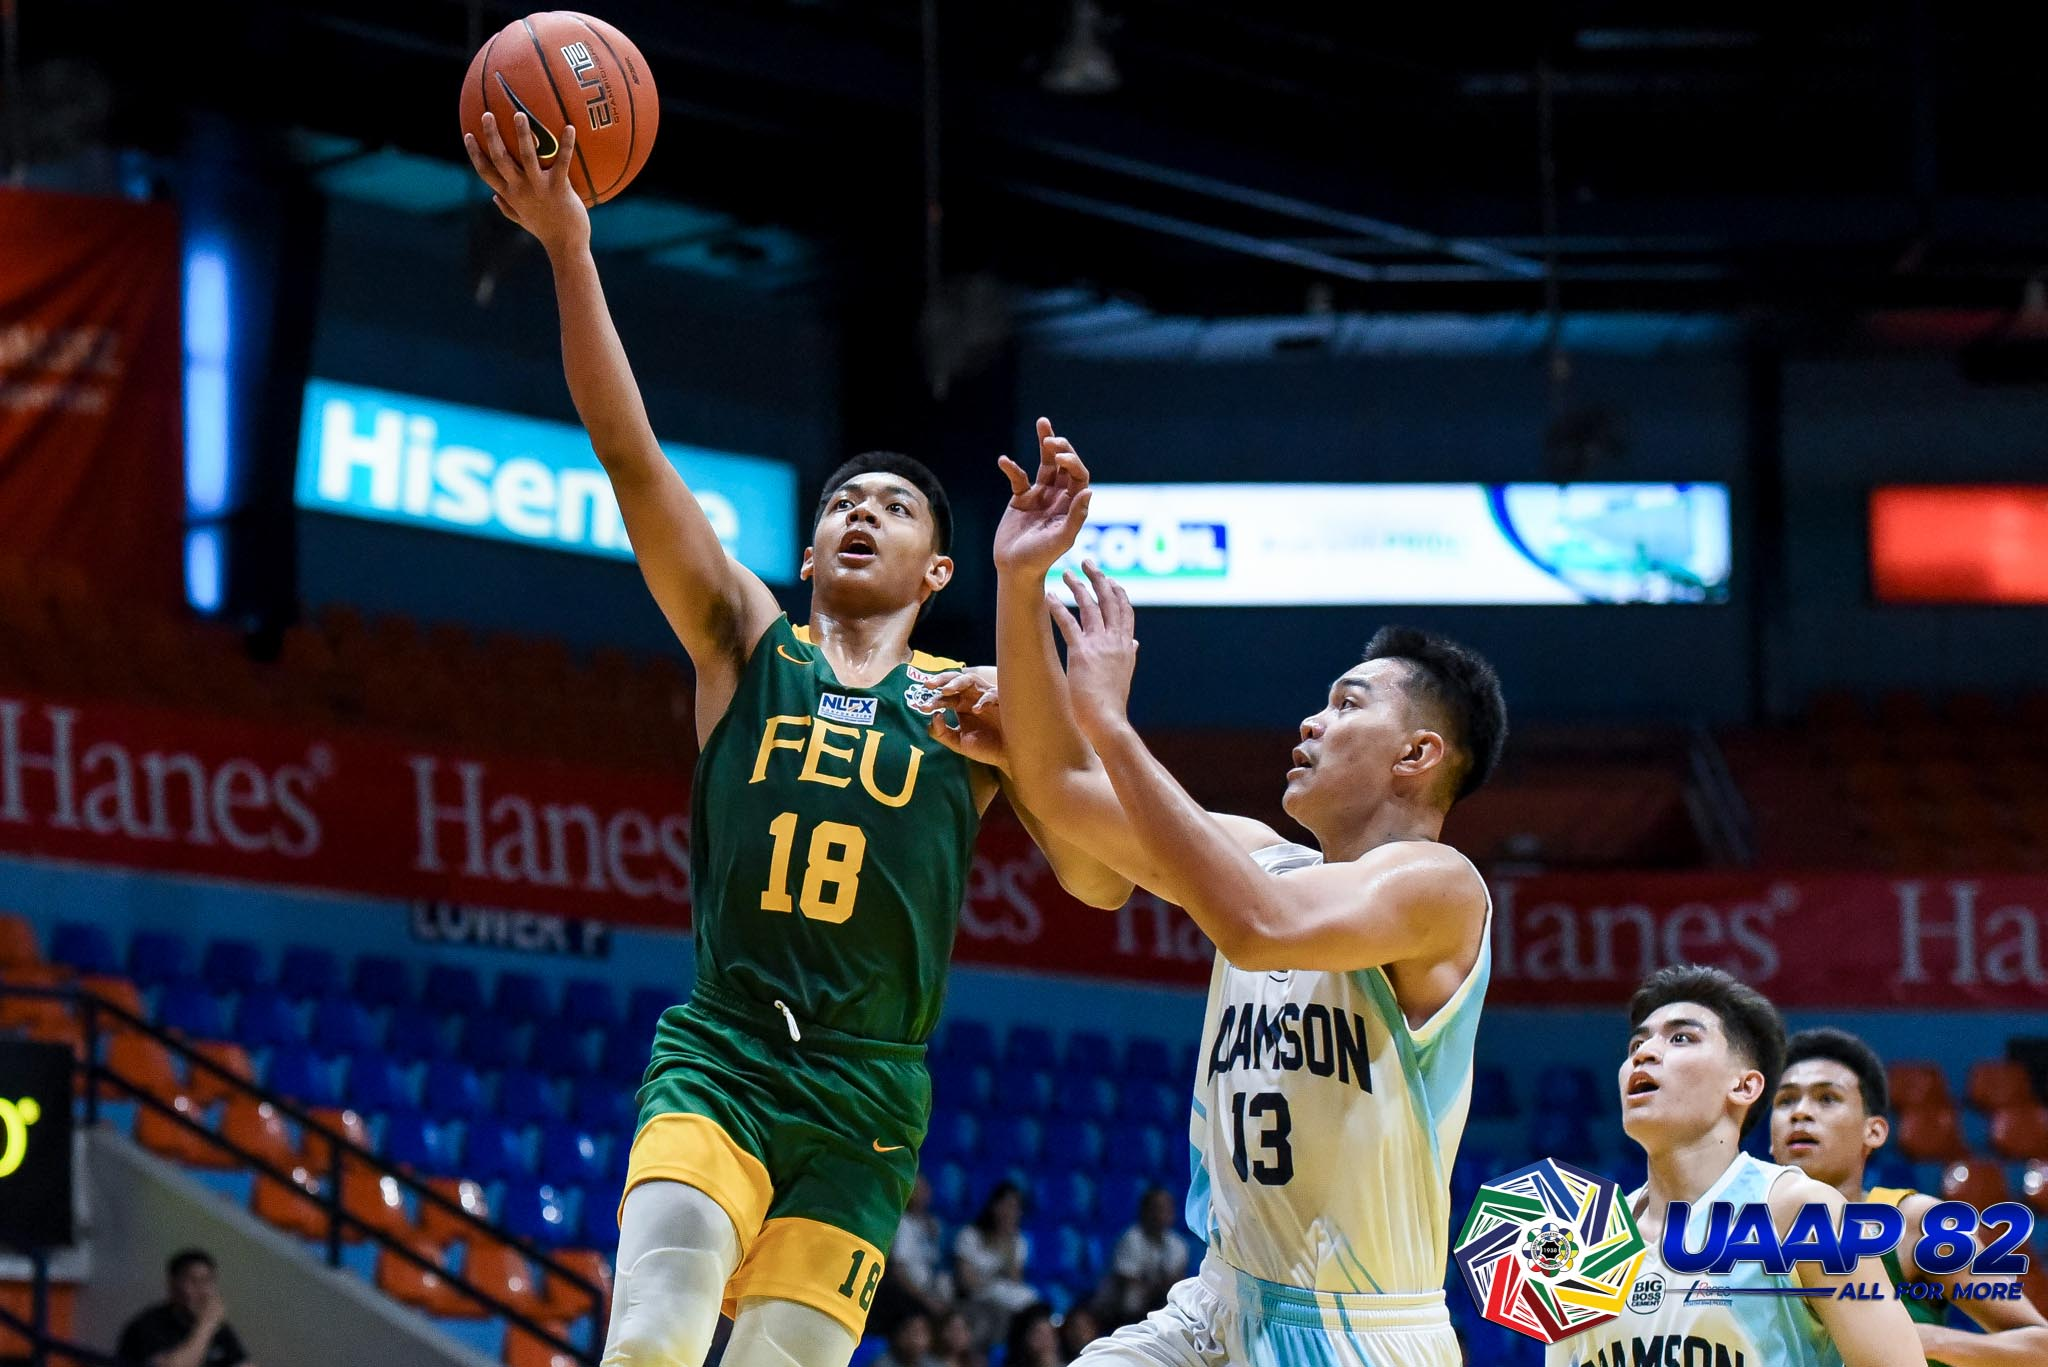 UAAP82-JRS-BASKETBALL-2ND-PHOTO-FEU-BAUTISTA FEU sees Stockton forego final two years, replenishes with Sleat, Bautista Basketball FEU News PBA UAAP  - philippine sports news